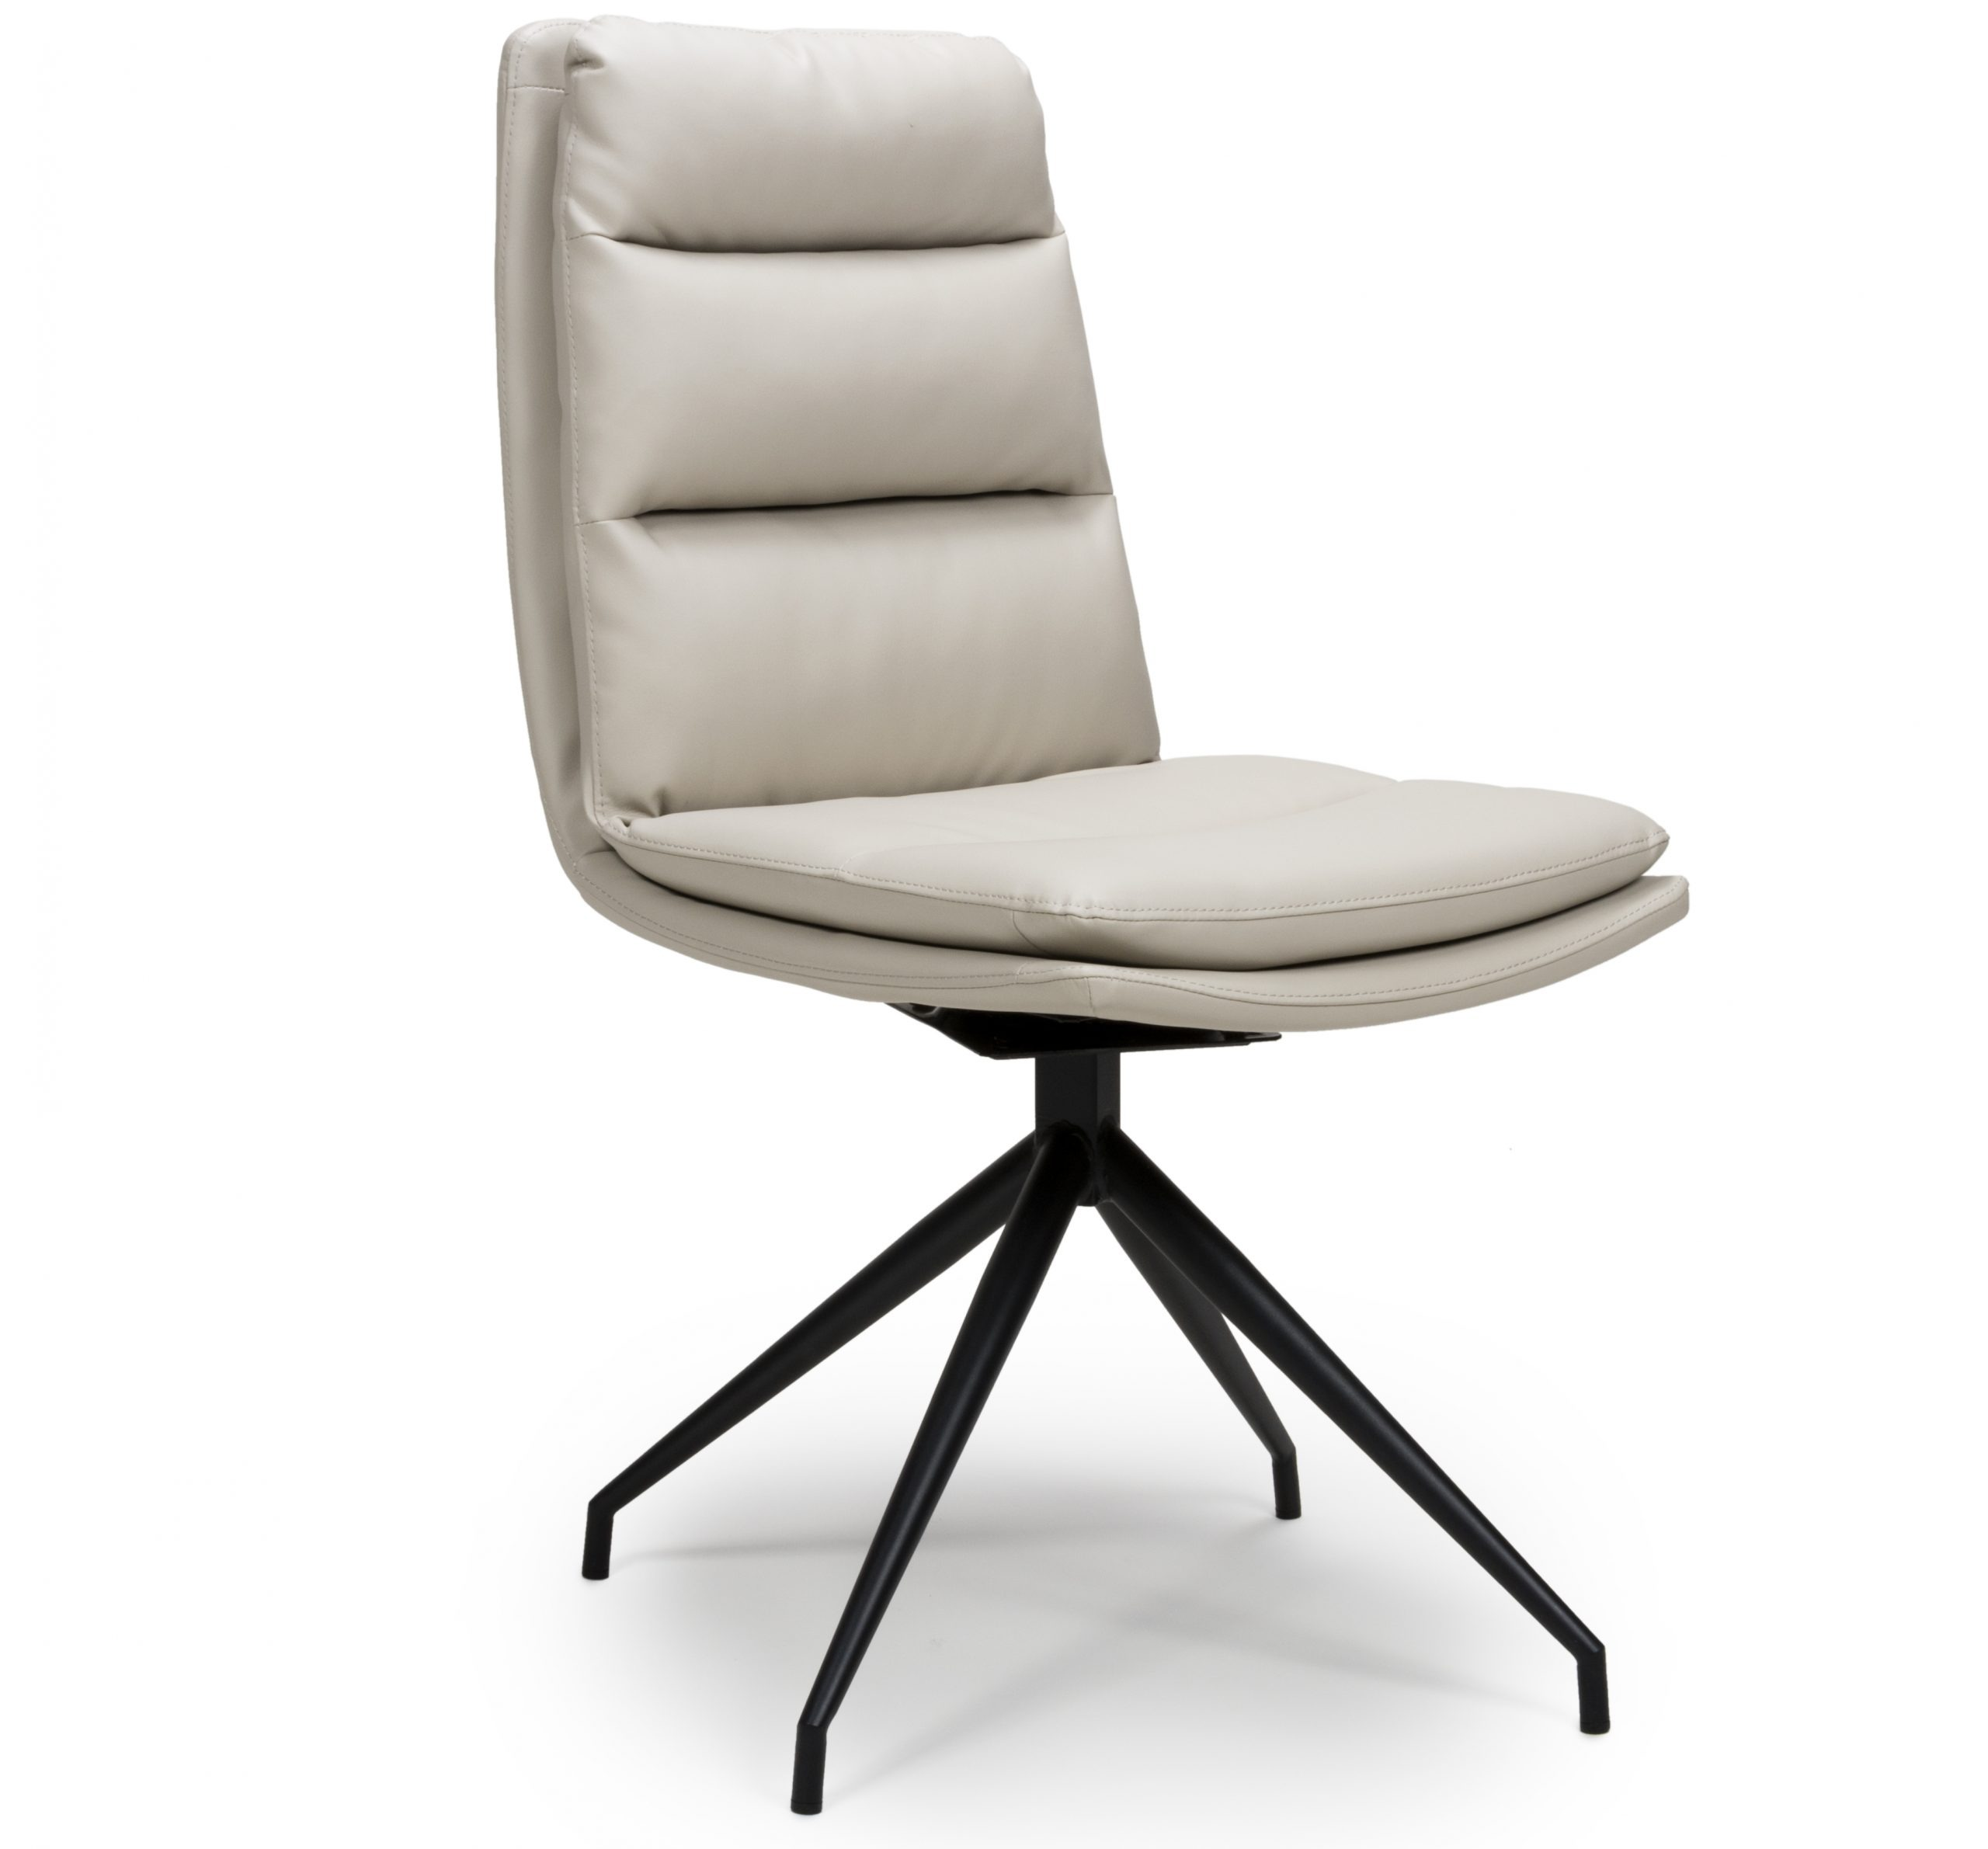 Dallas Taupe leather swivel dining chair